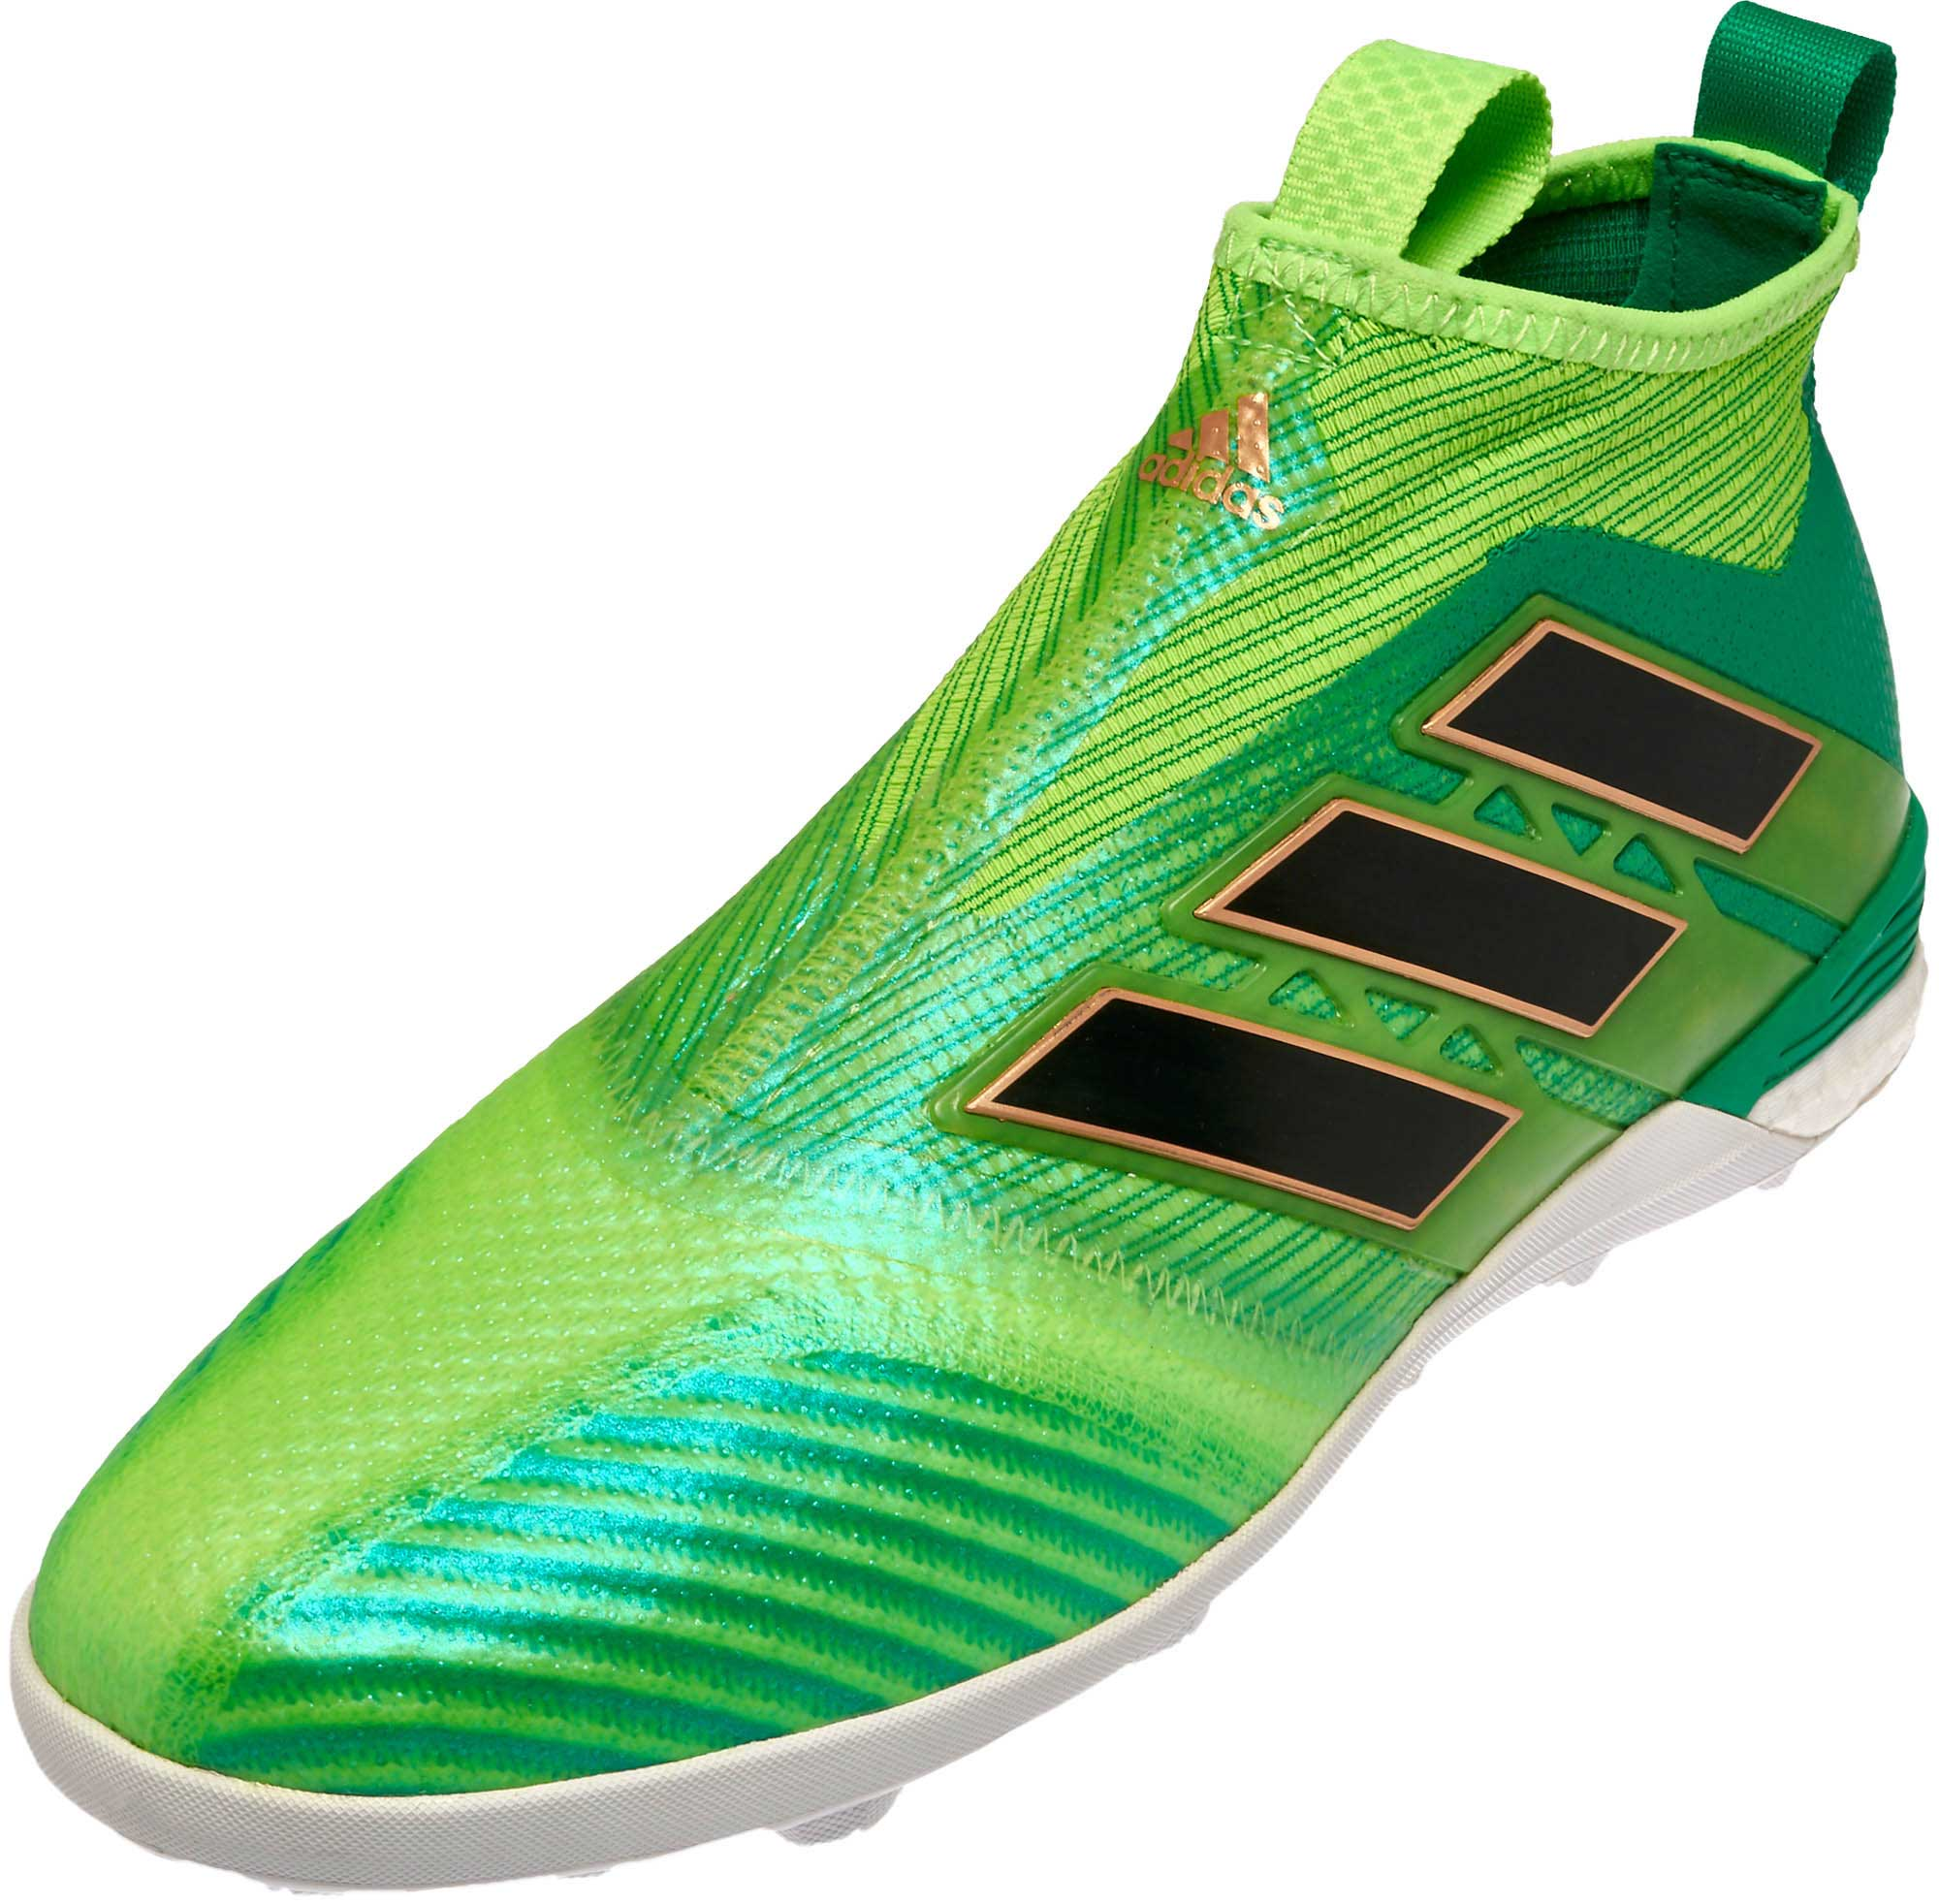 wholesale dealer f73fe f1e3f adidas ACE Tango 17 Purecontrol TF – Solar GreenBlack